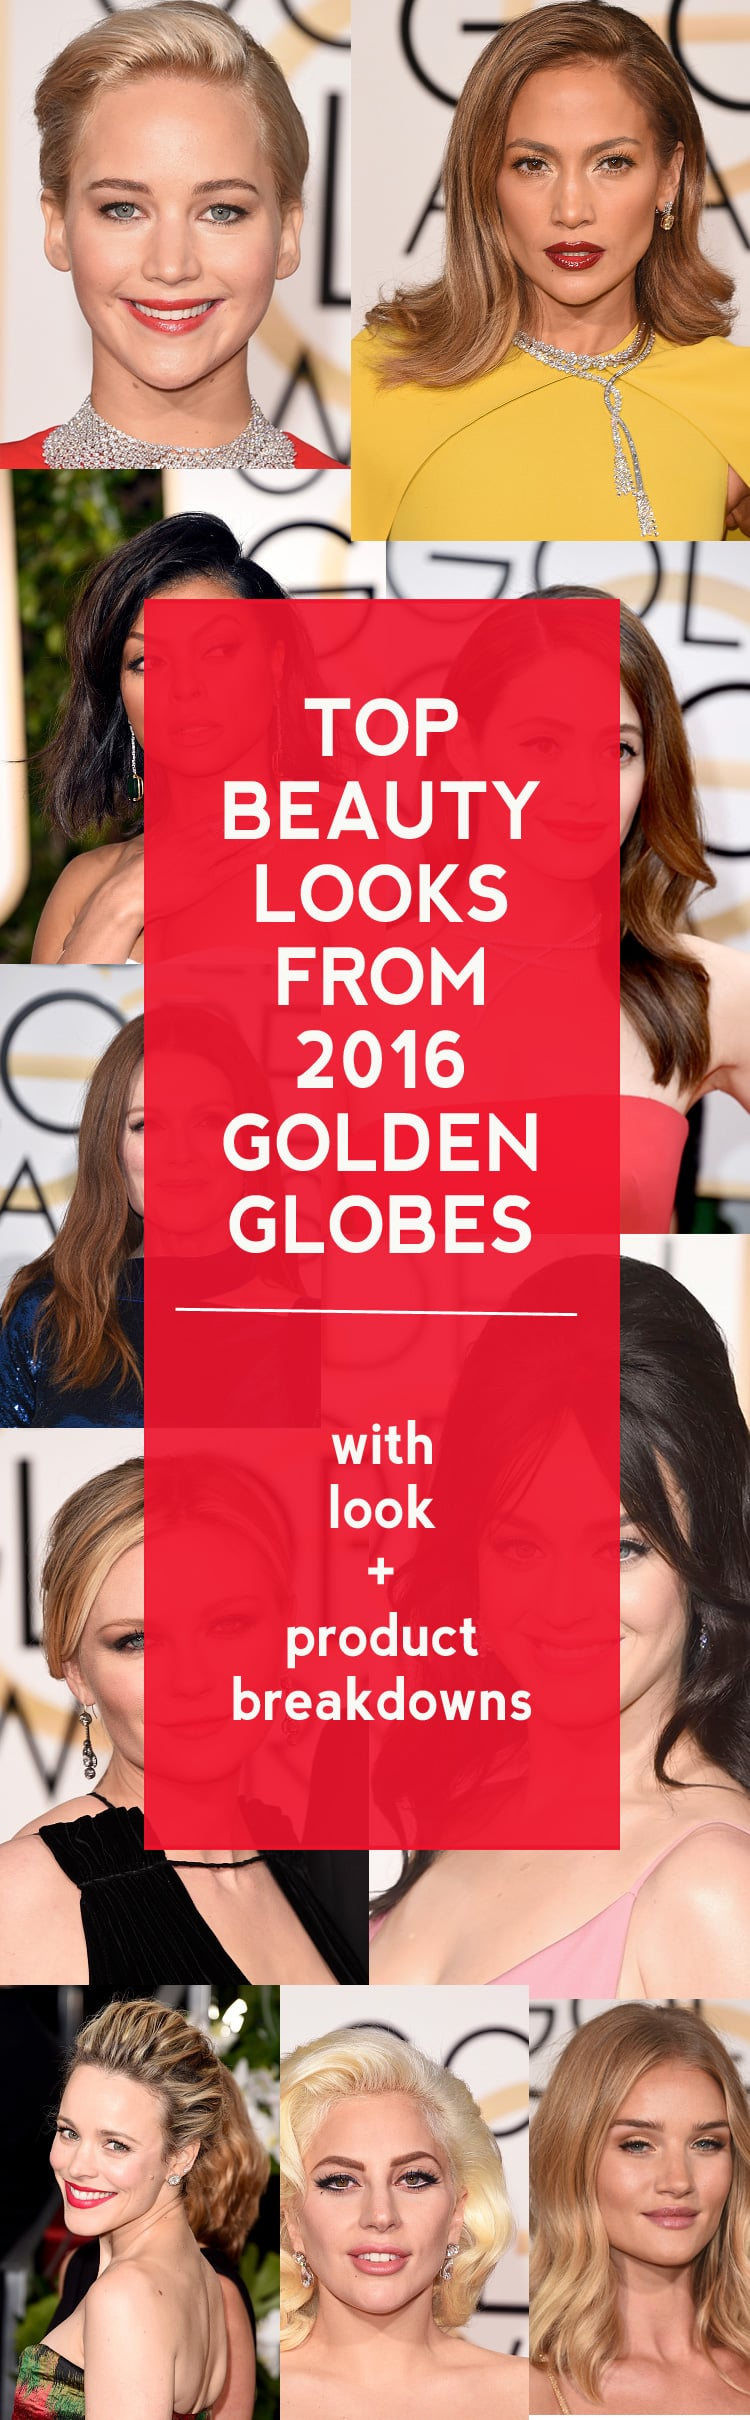 Top Beauty Looks from the 2016 Golden Globes with all of the hair and makeup details!